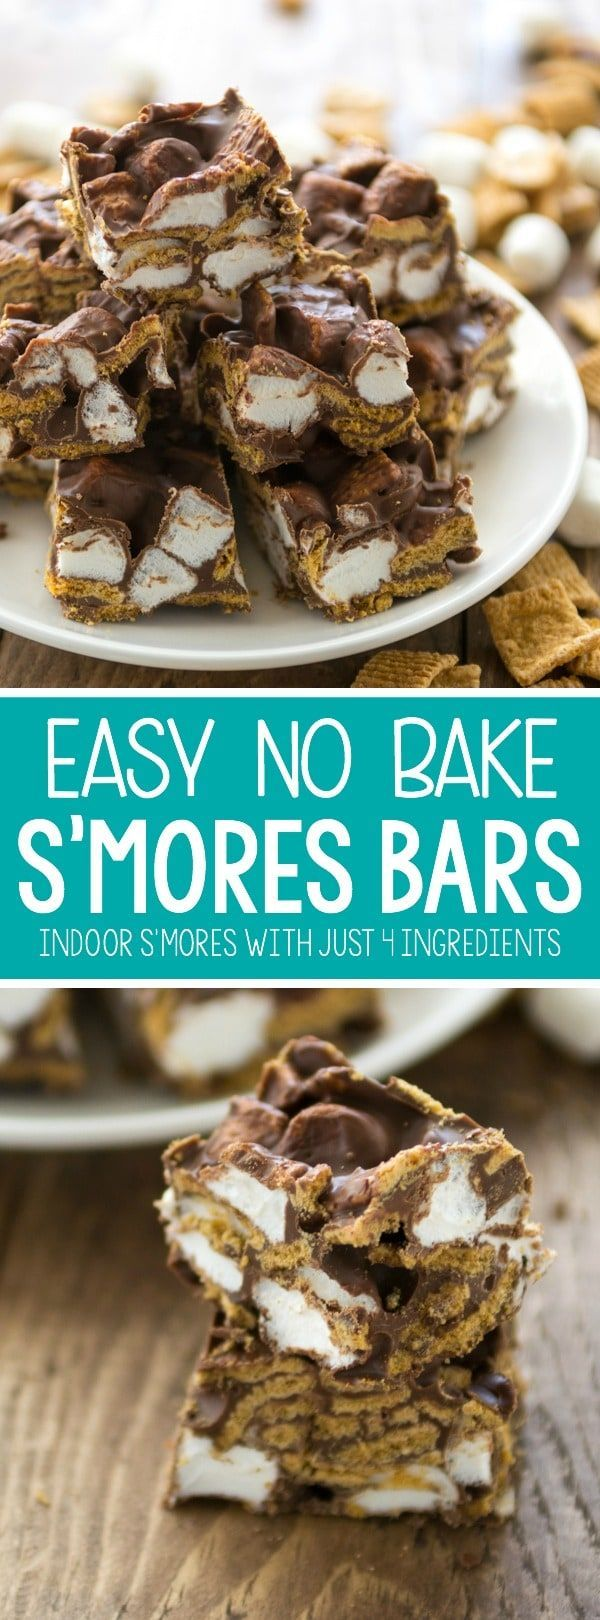 easy no bake s mores bars this easy indoor s more recipe has just 4 ingredients and the